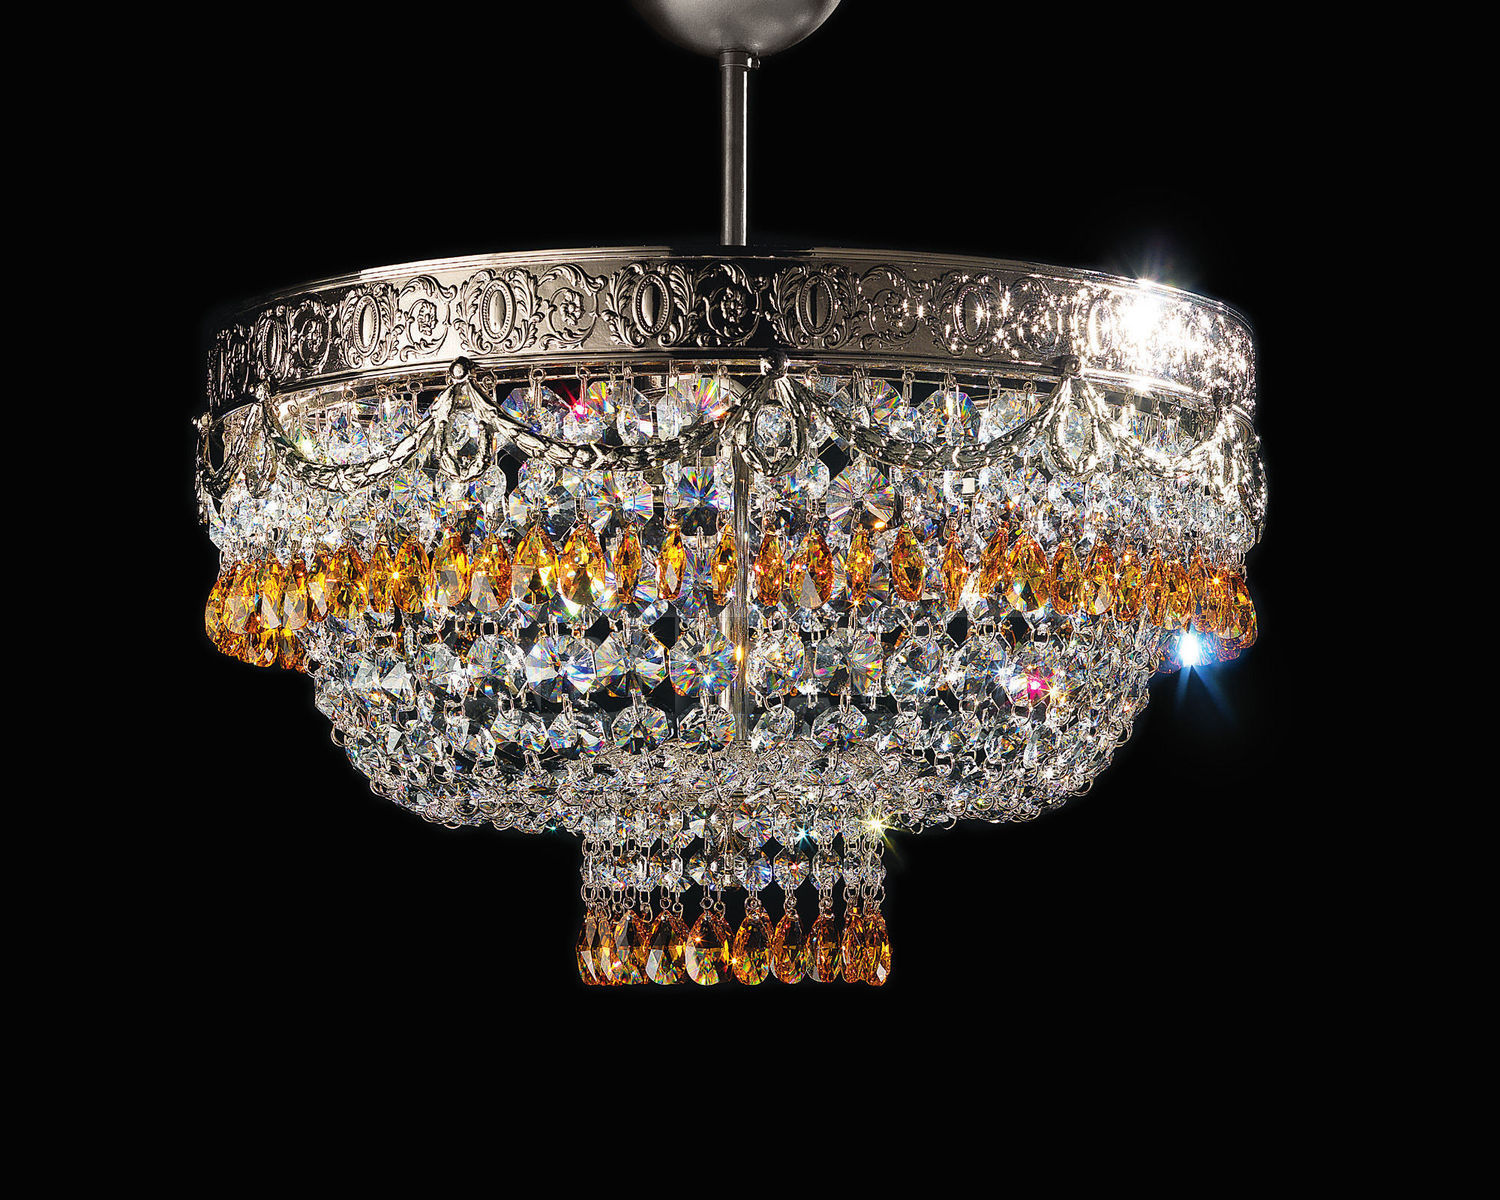 Купить Люстра Non Solo Luce Ceiling Lamps MILANO CL-06 PN